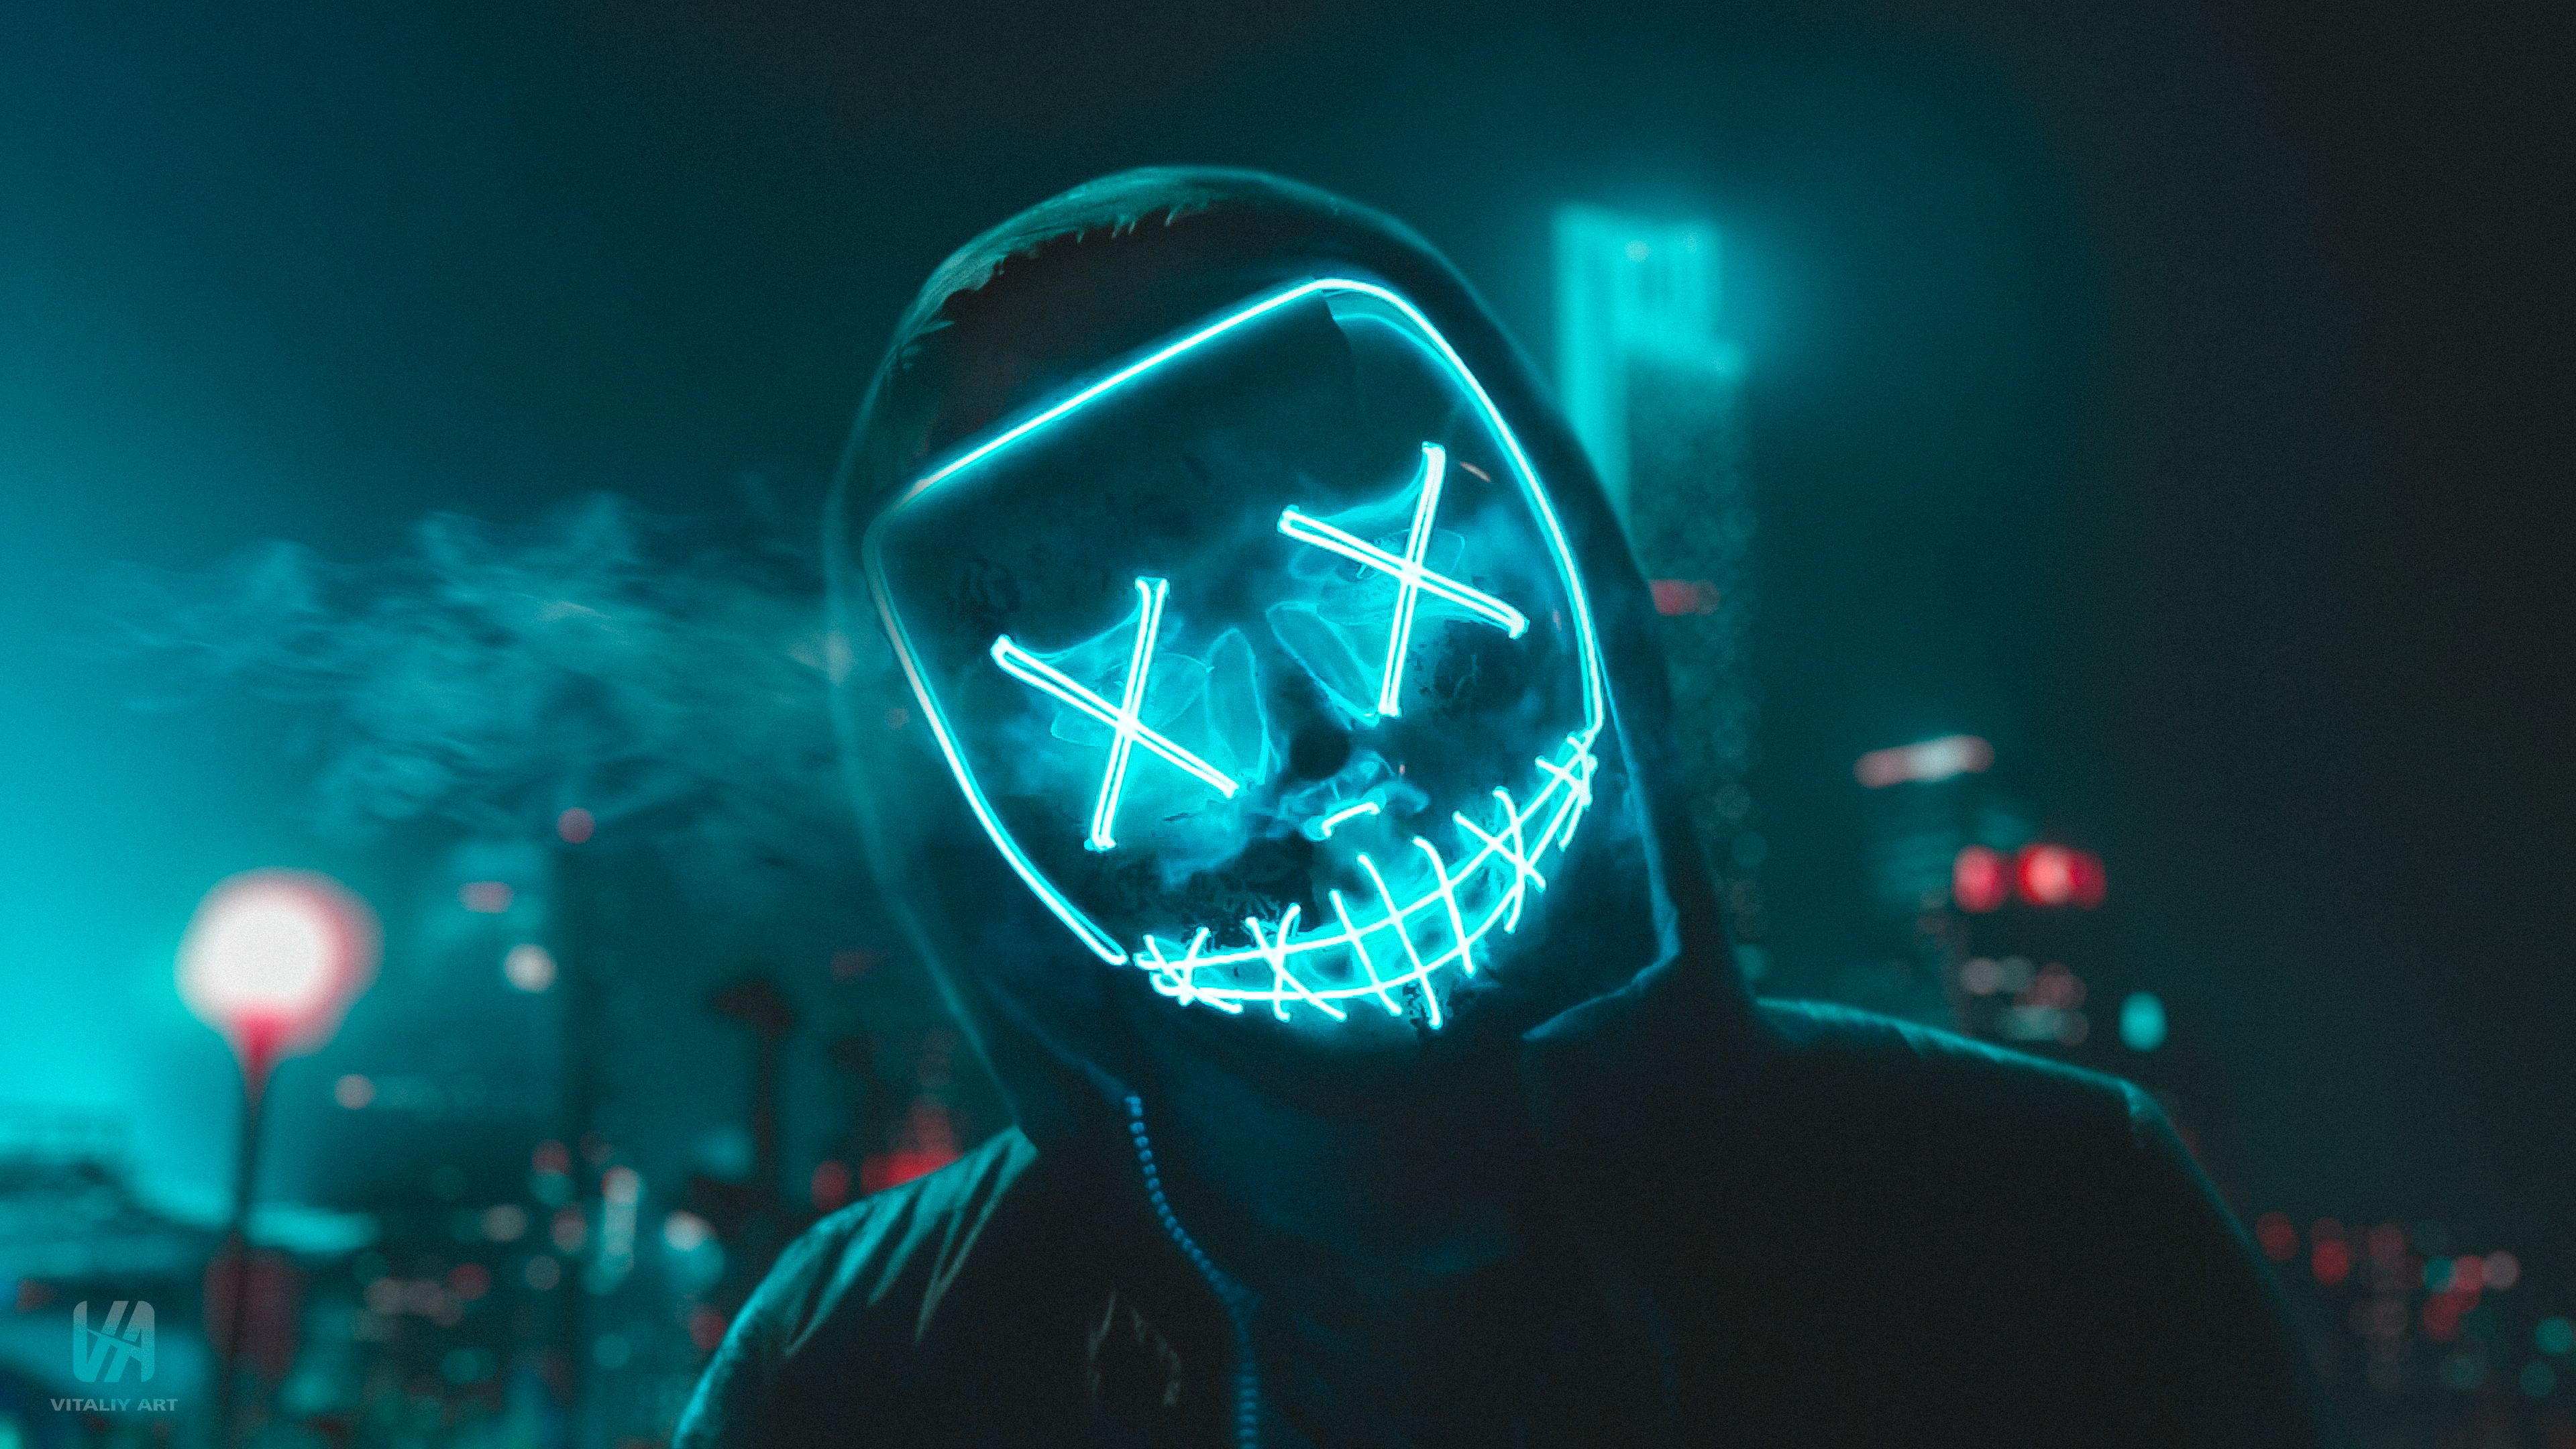 Purge Mask Wallpapers Top Free Purge Mask Backgrounds